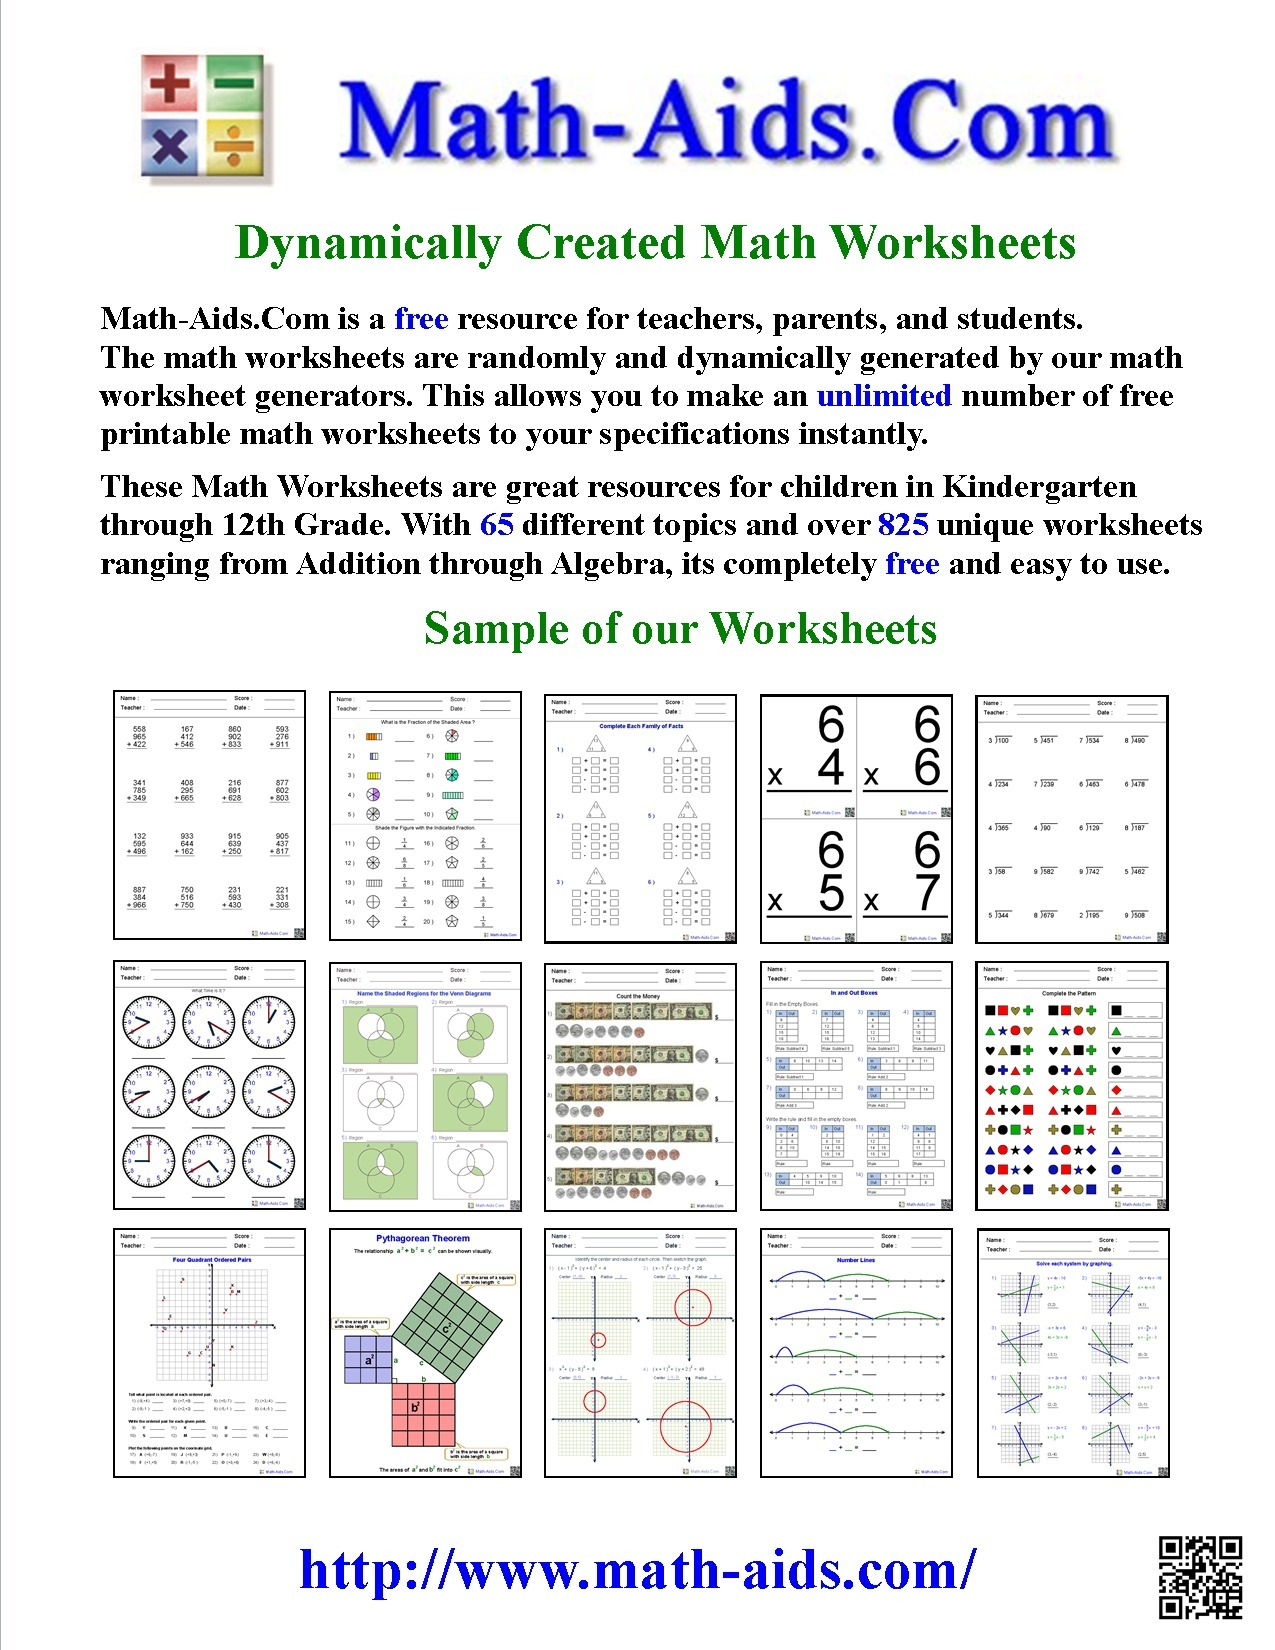 math worksheet : math worksheets  dynamically created math work : Dynamically Created Math Worksheets